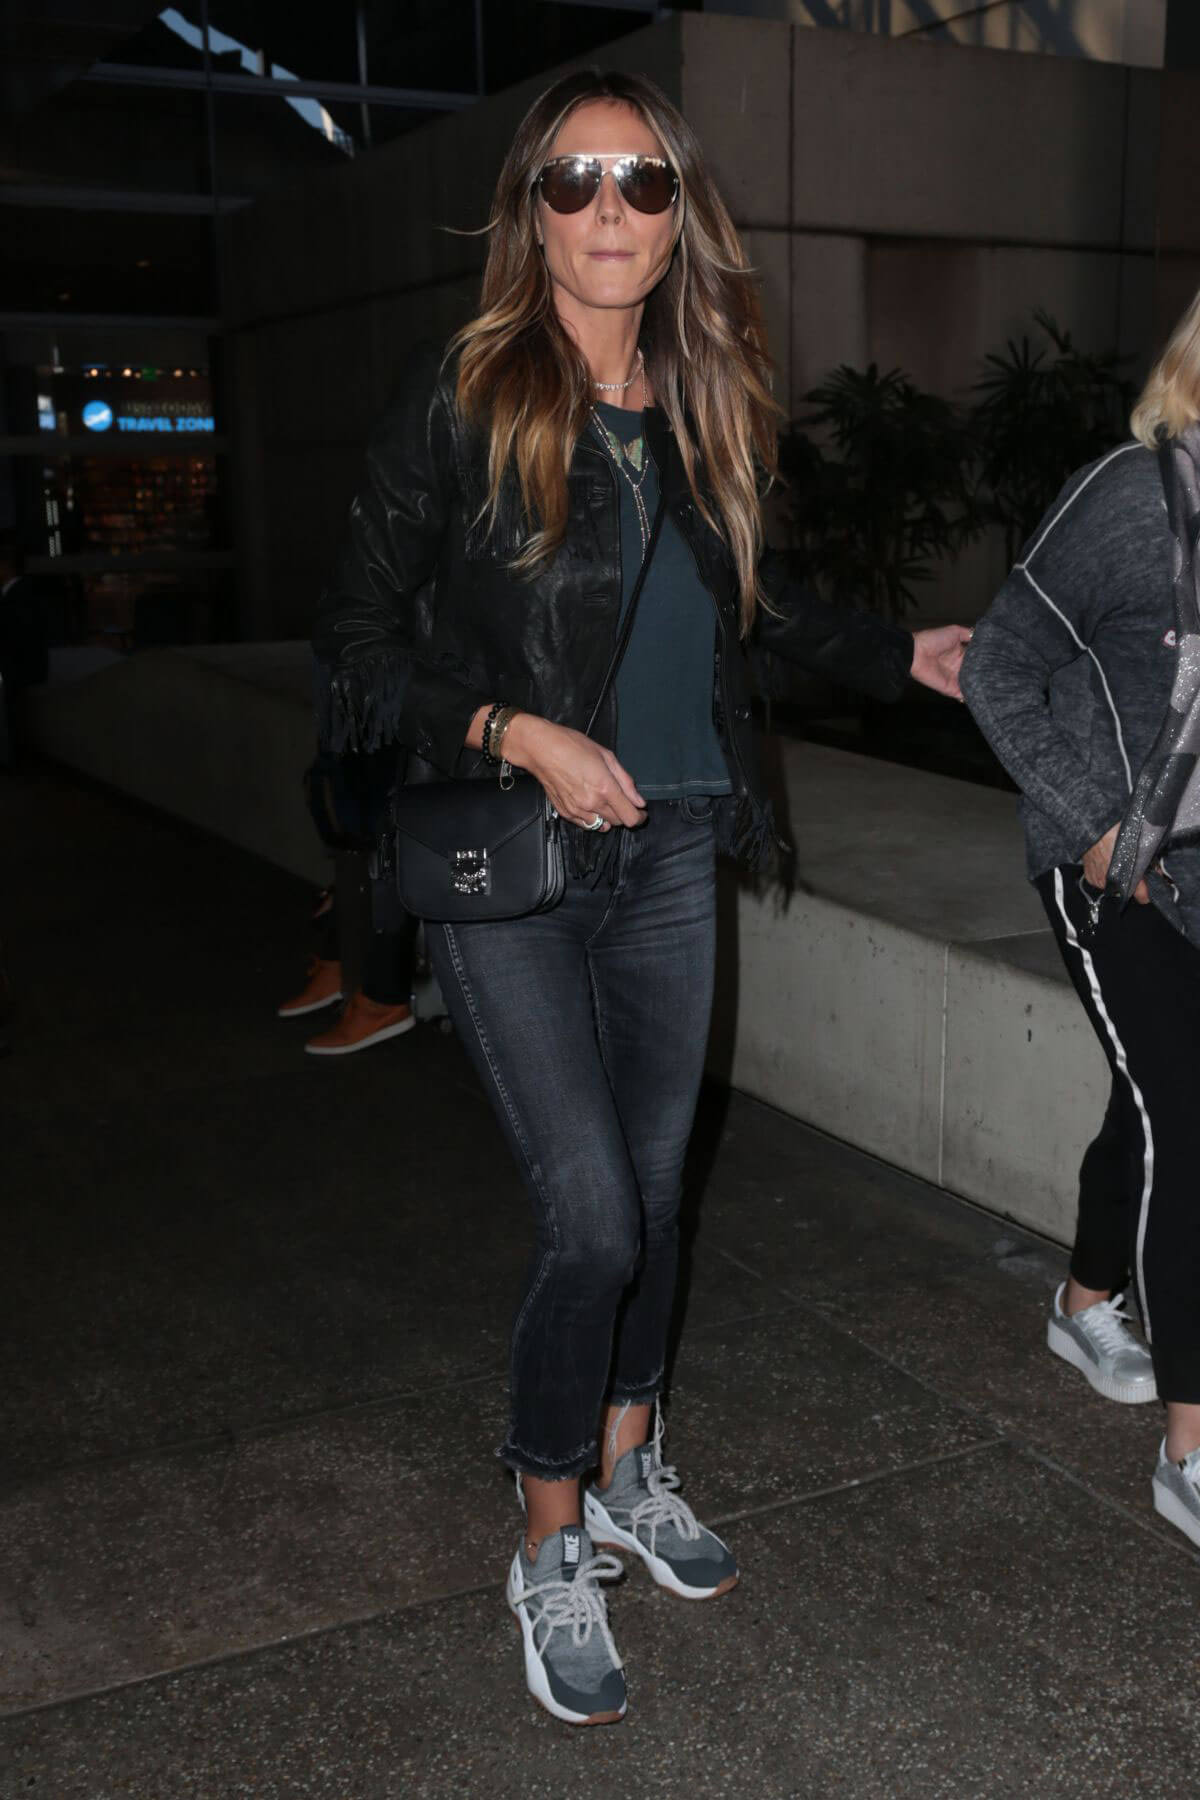 Heidi Klum wears Ankle Length Jeans at LAX Airport in Los Angeles